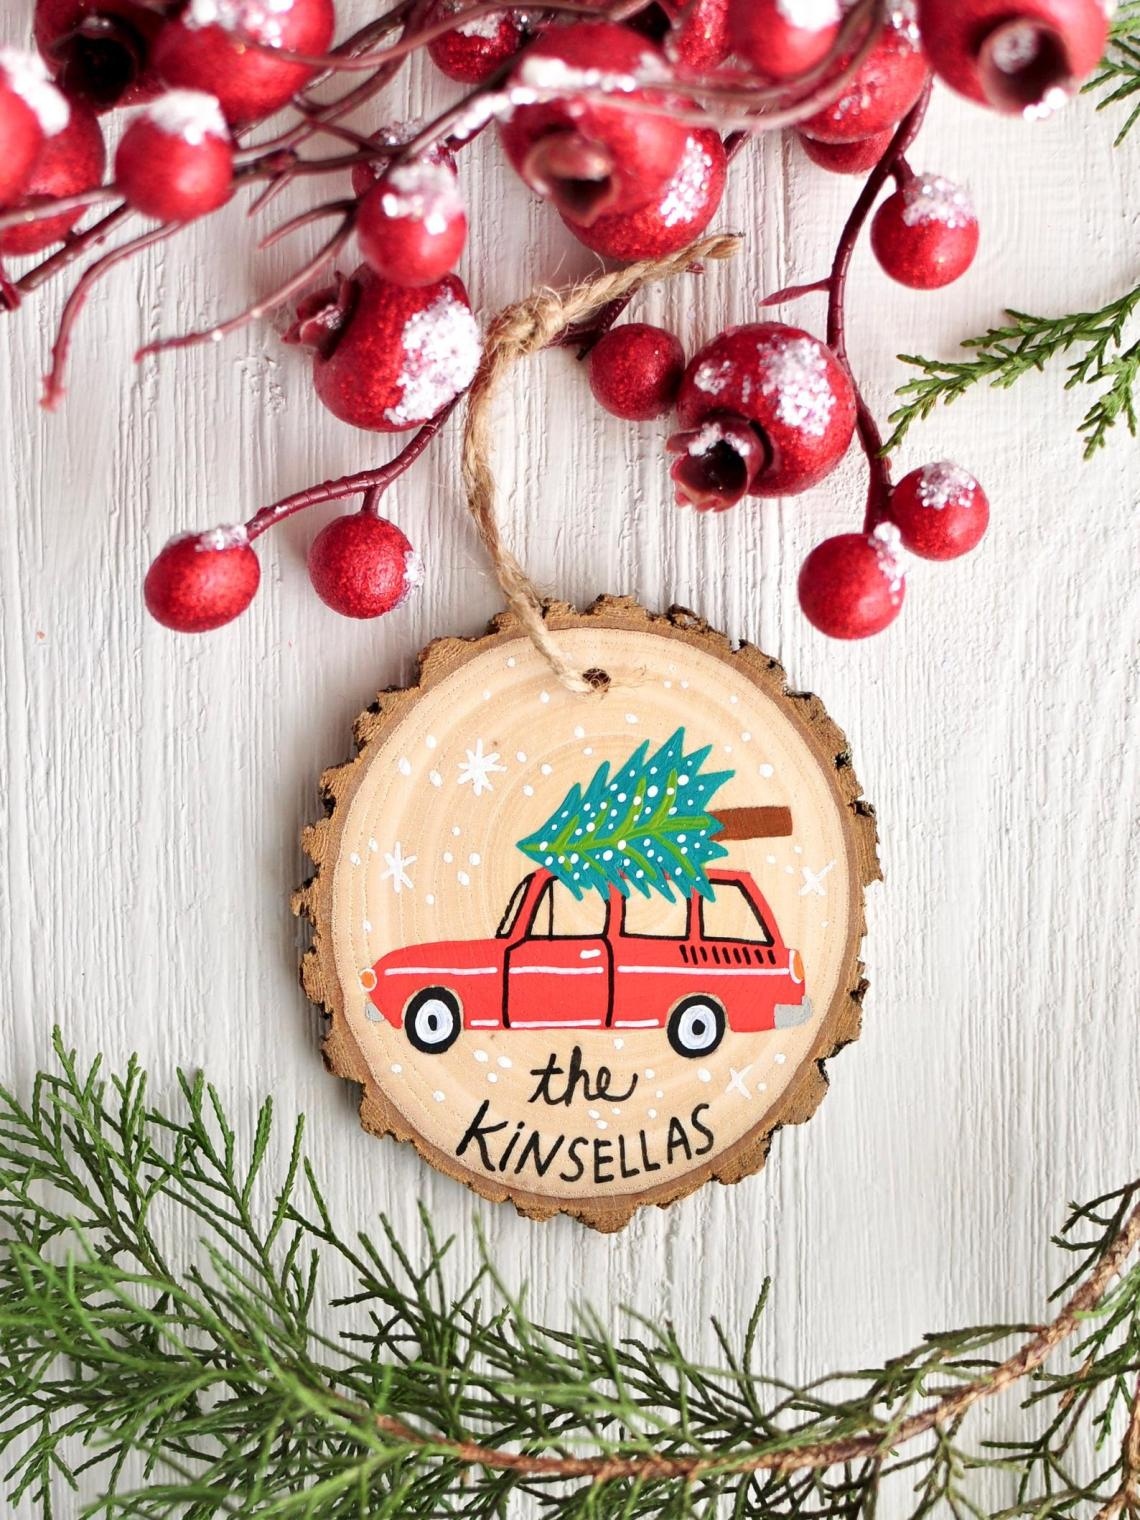 Best Gift For Her Personalized Hand Painted Family Ornament